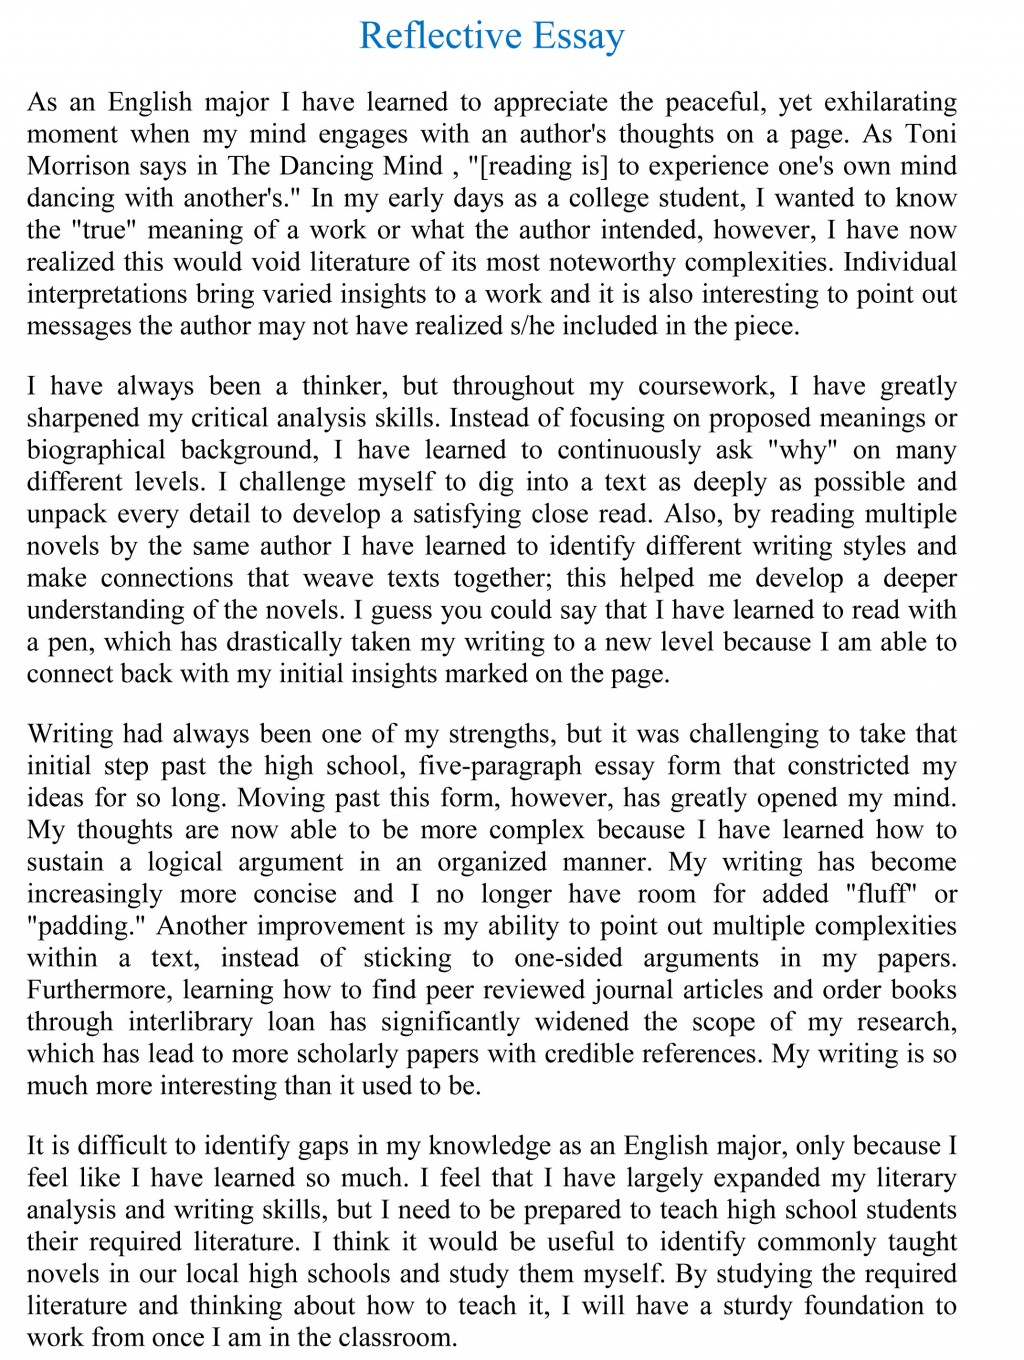 017 Essay Example Dialogue Writing An About Yourself Cover Letter Tell Me How To Best Write In Spanish English Third Person Large